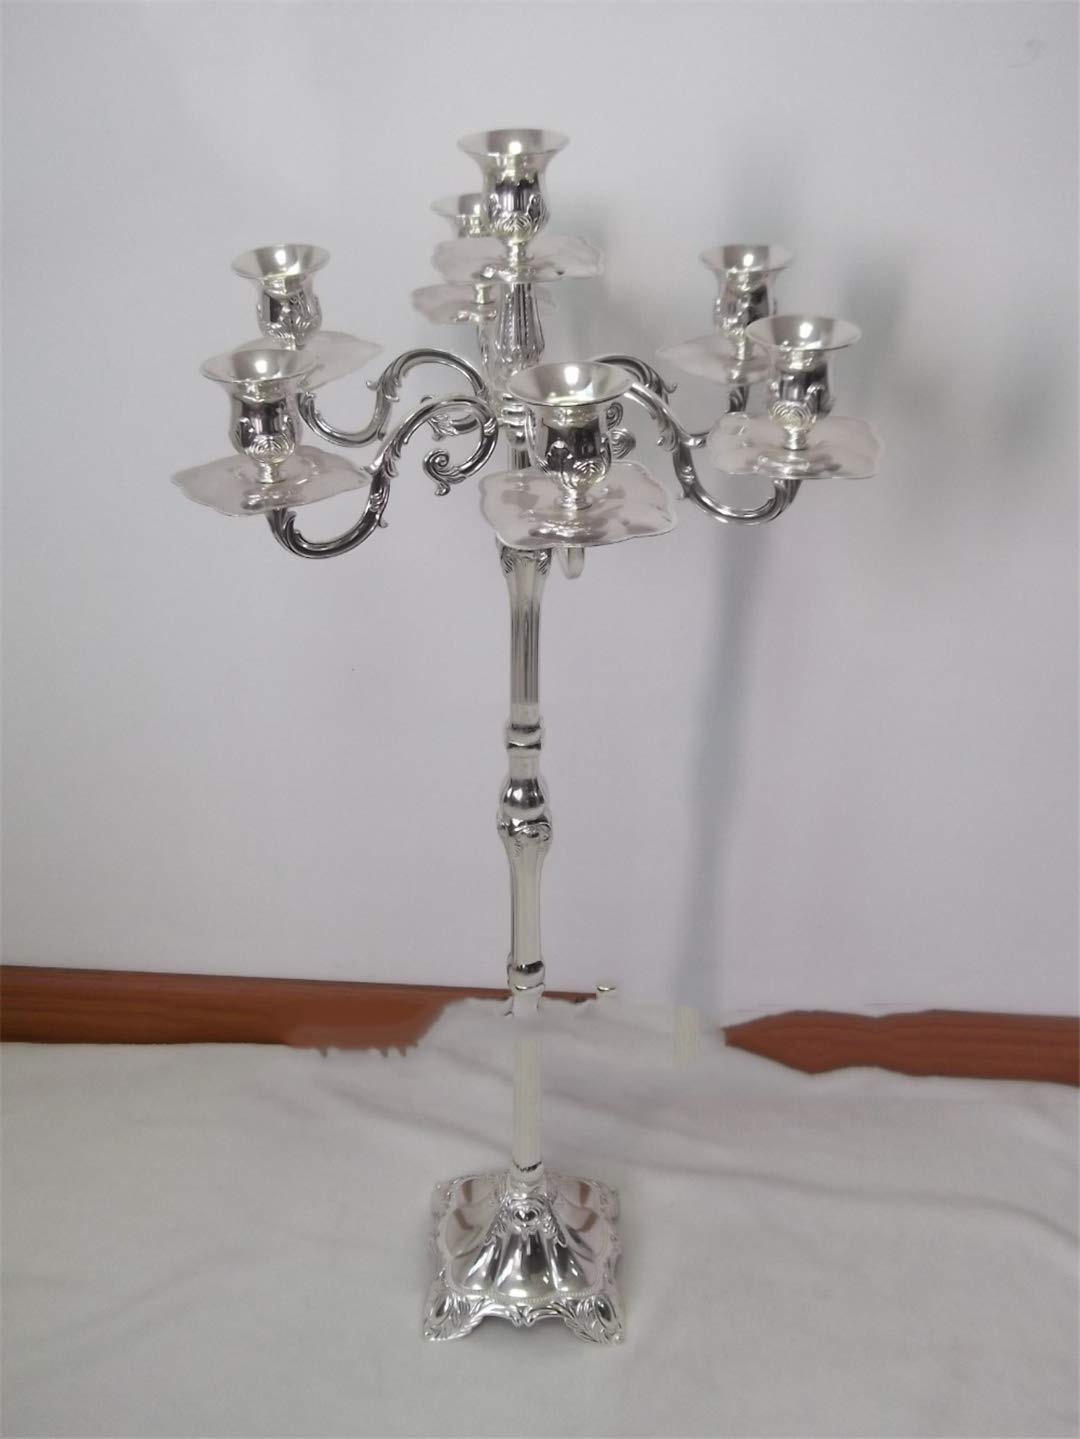 Unique Candelabra, 83Cm Height 7-Lights Silver Finish Candle Holder, Party Or Use Floor Candlesticks